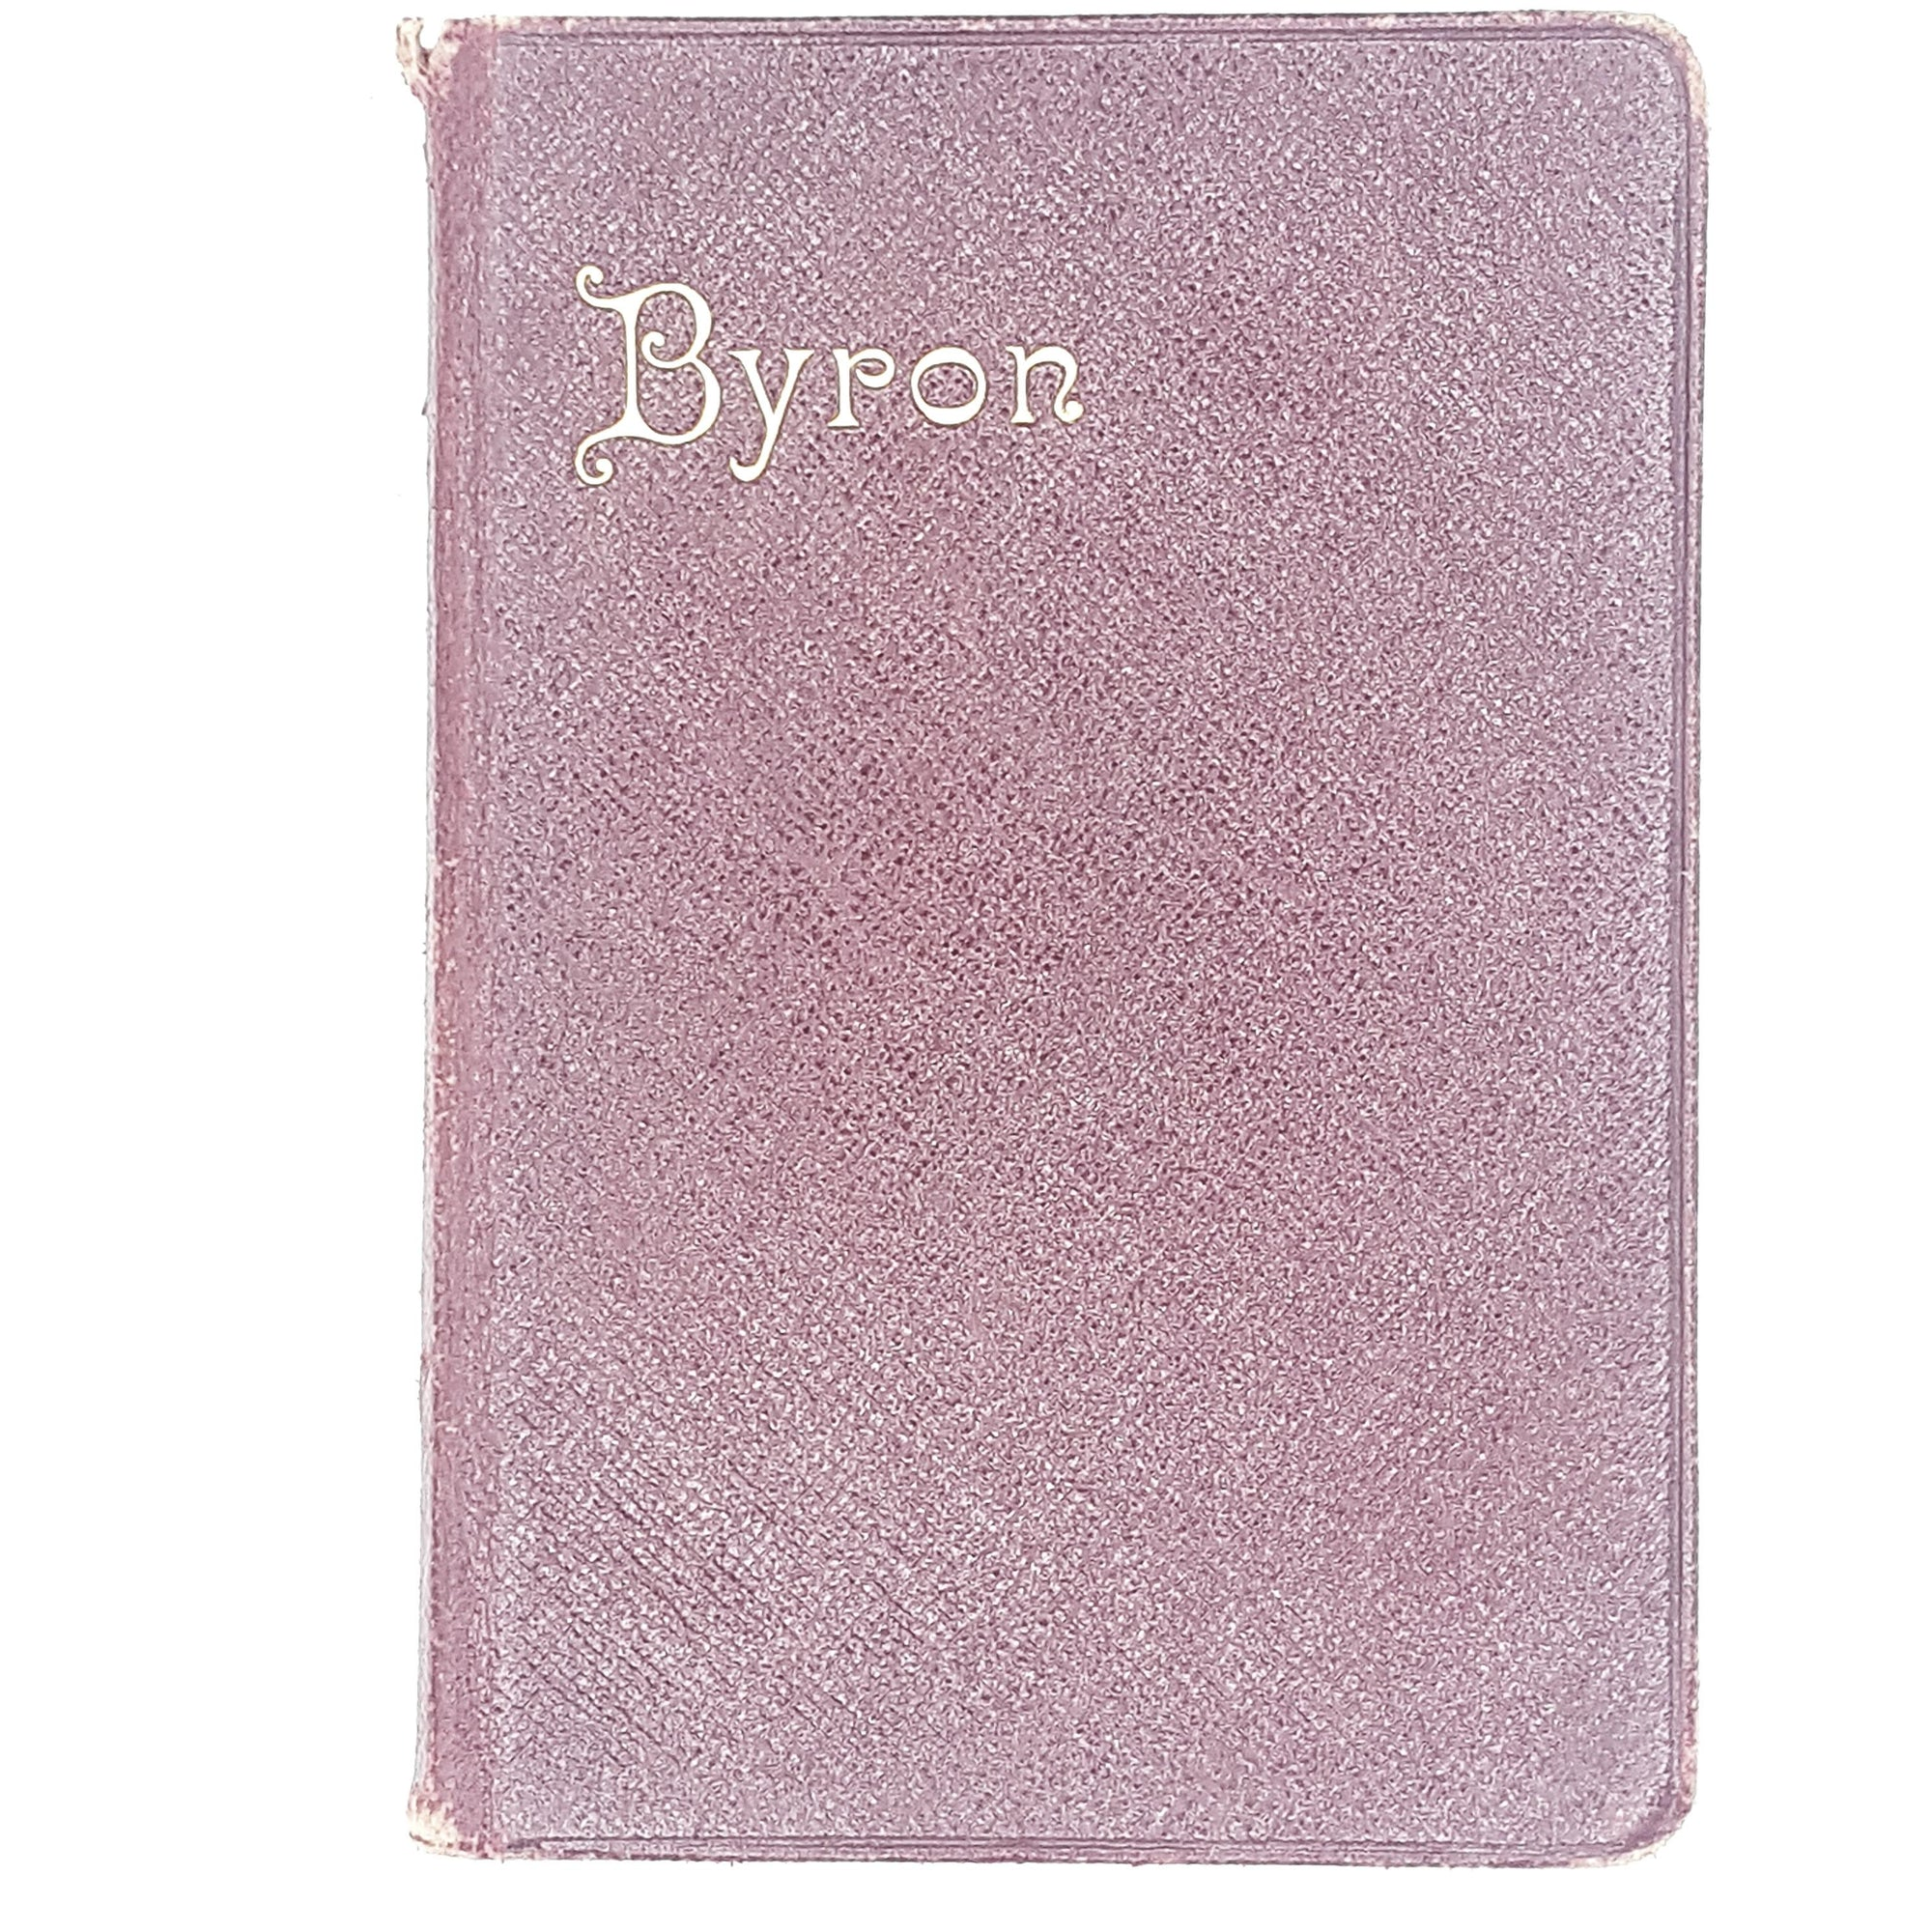 Vintage Poetry: Bryon's Poetical Works 1904